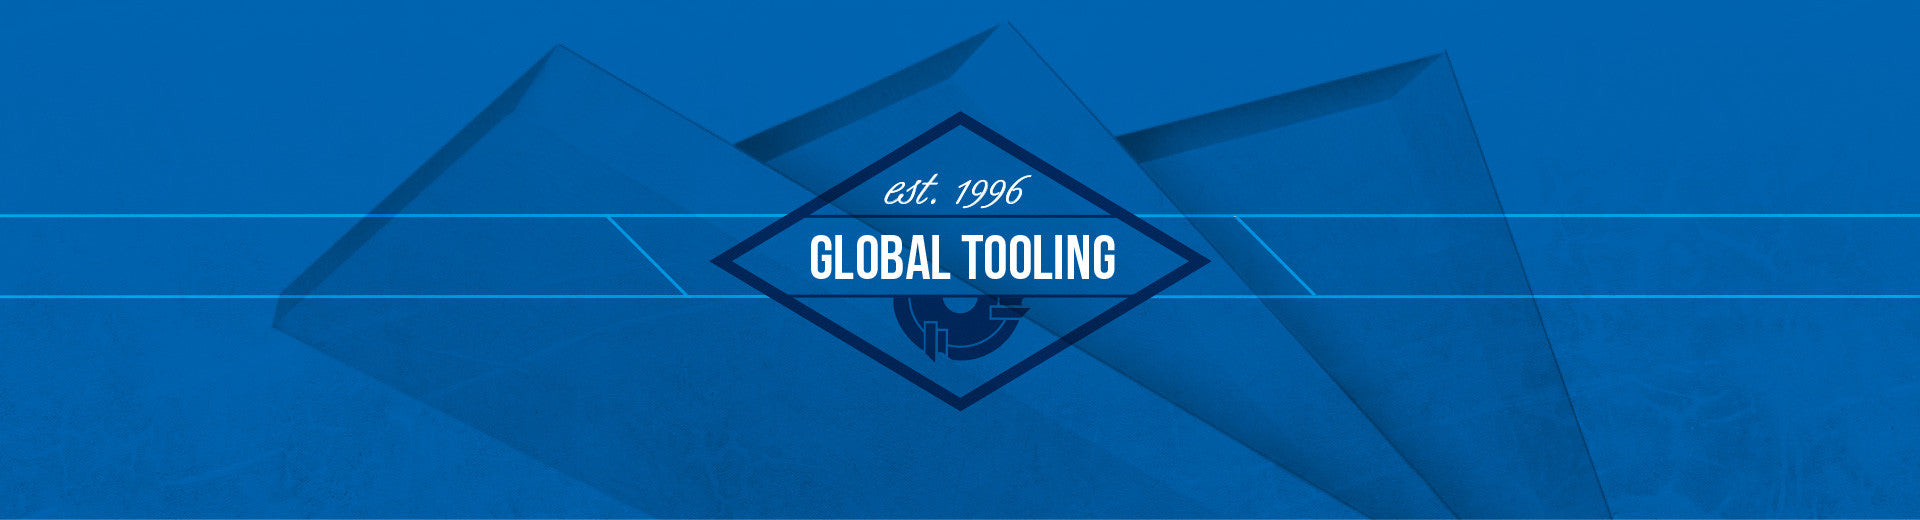 Global Tooling & Supply